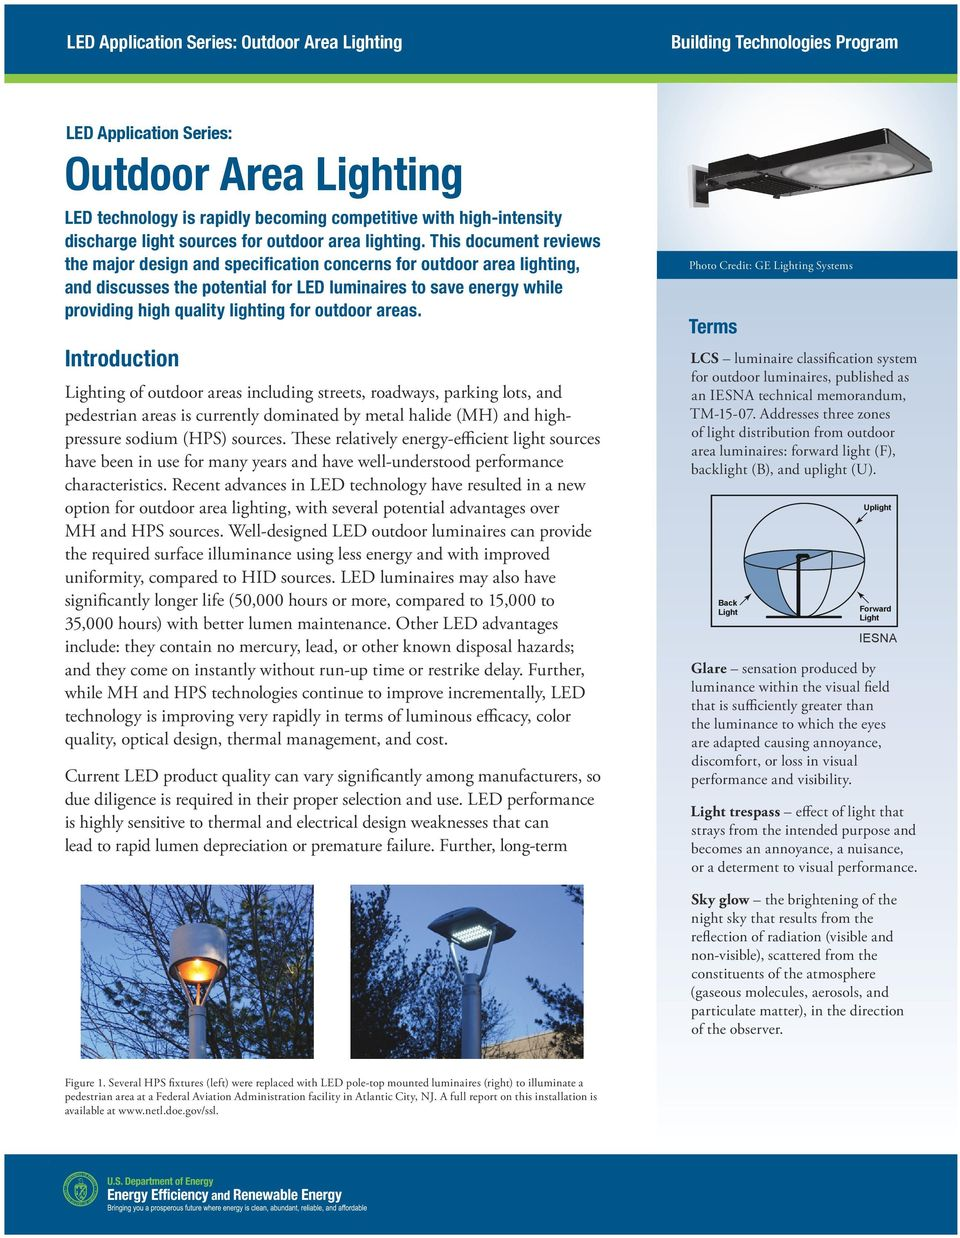 This document reviews the major design and specification concerns for outdoor area lighting, and discusses the potential for LED luminaires to save energy while providing high quality lighting for